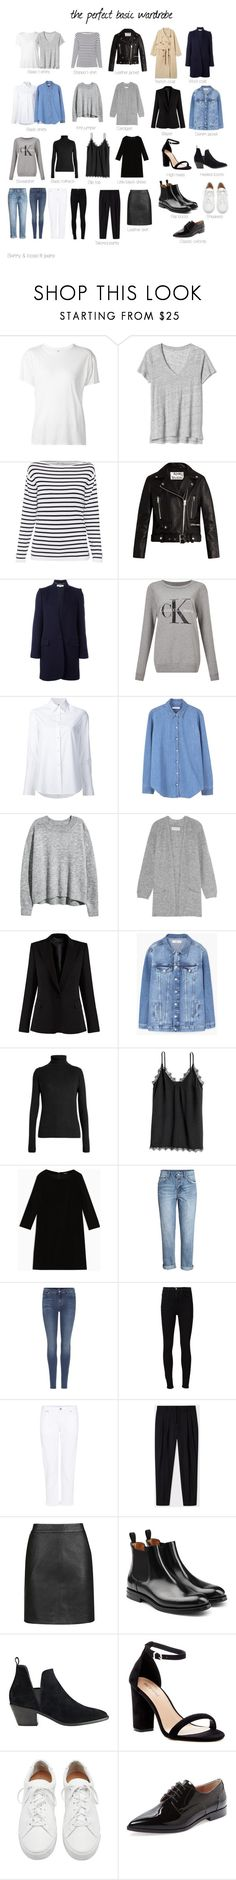 """The perfect basic wardrobe"" by uselessdk ❤ liked on Polyvore featuring R13, Acne Studios, STELLA McCARTNEY, Calvin Klein, Misha Nonoo, MANGO, By Malene Birger, Raey, Max&Co. and 7 For All Mankind"